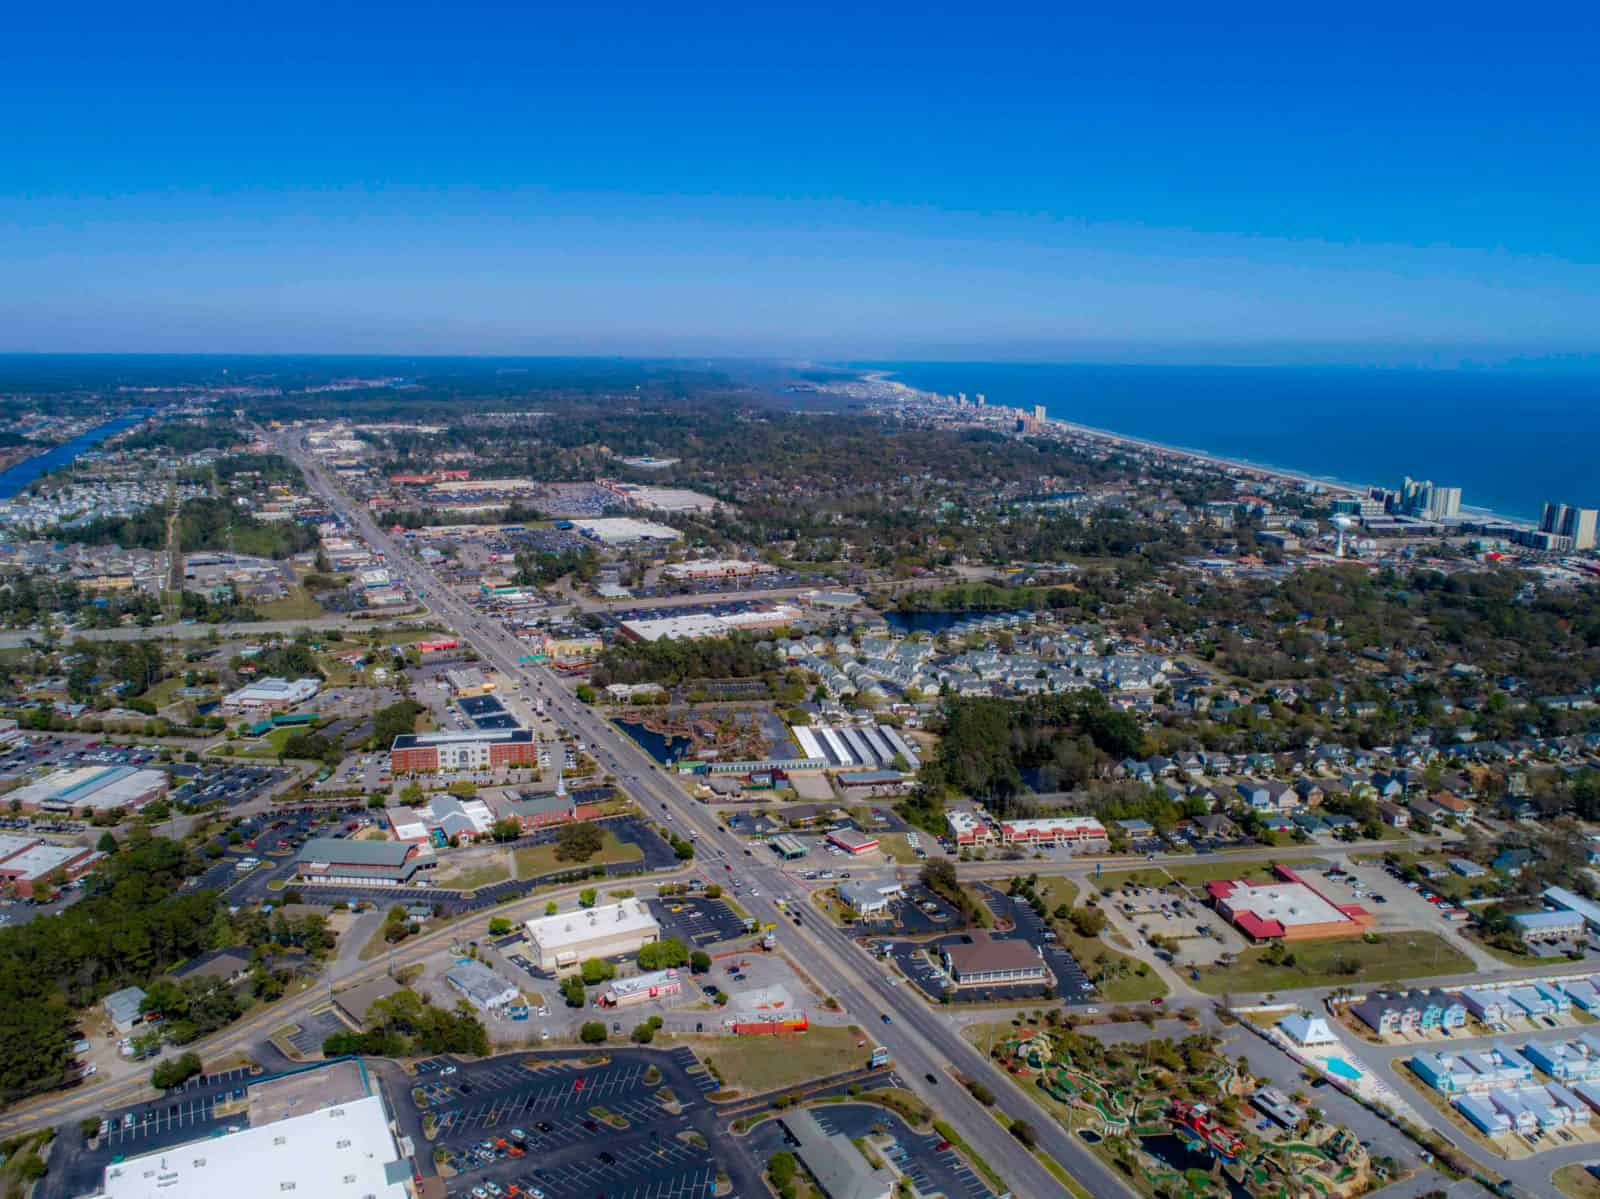 aerial drone photo of South Carolina near ocean